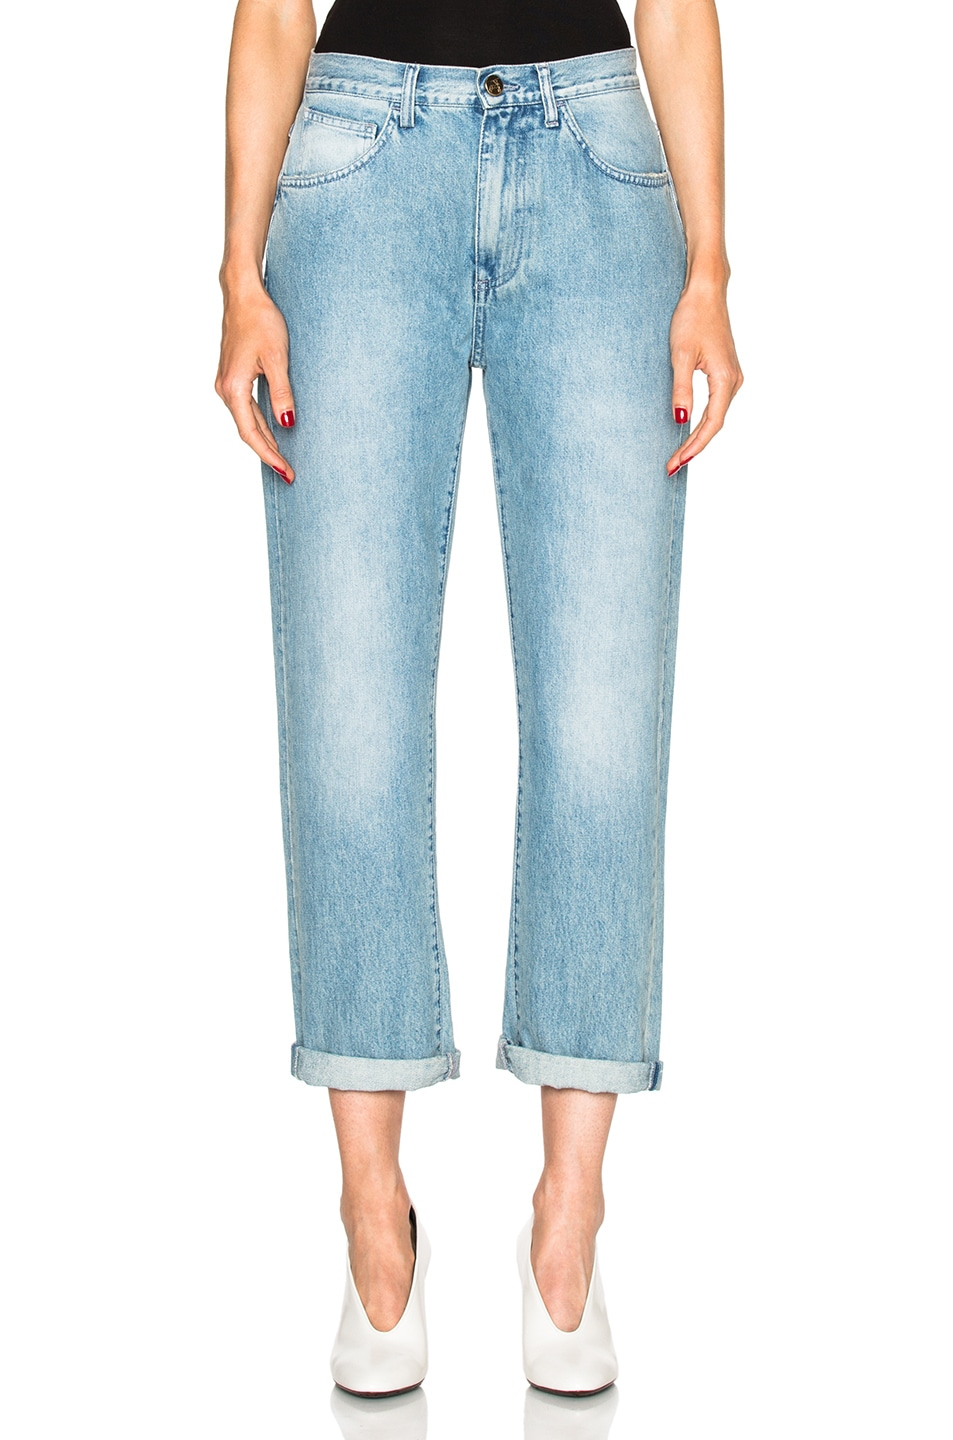 Image 1 of Rodebjer Lead Sister Jeans in Light Blue